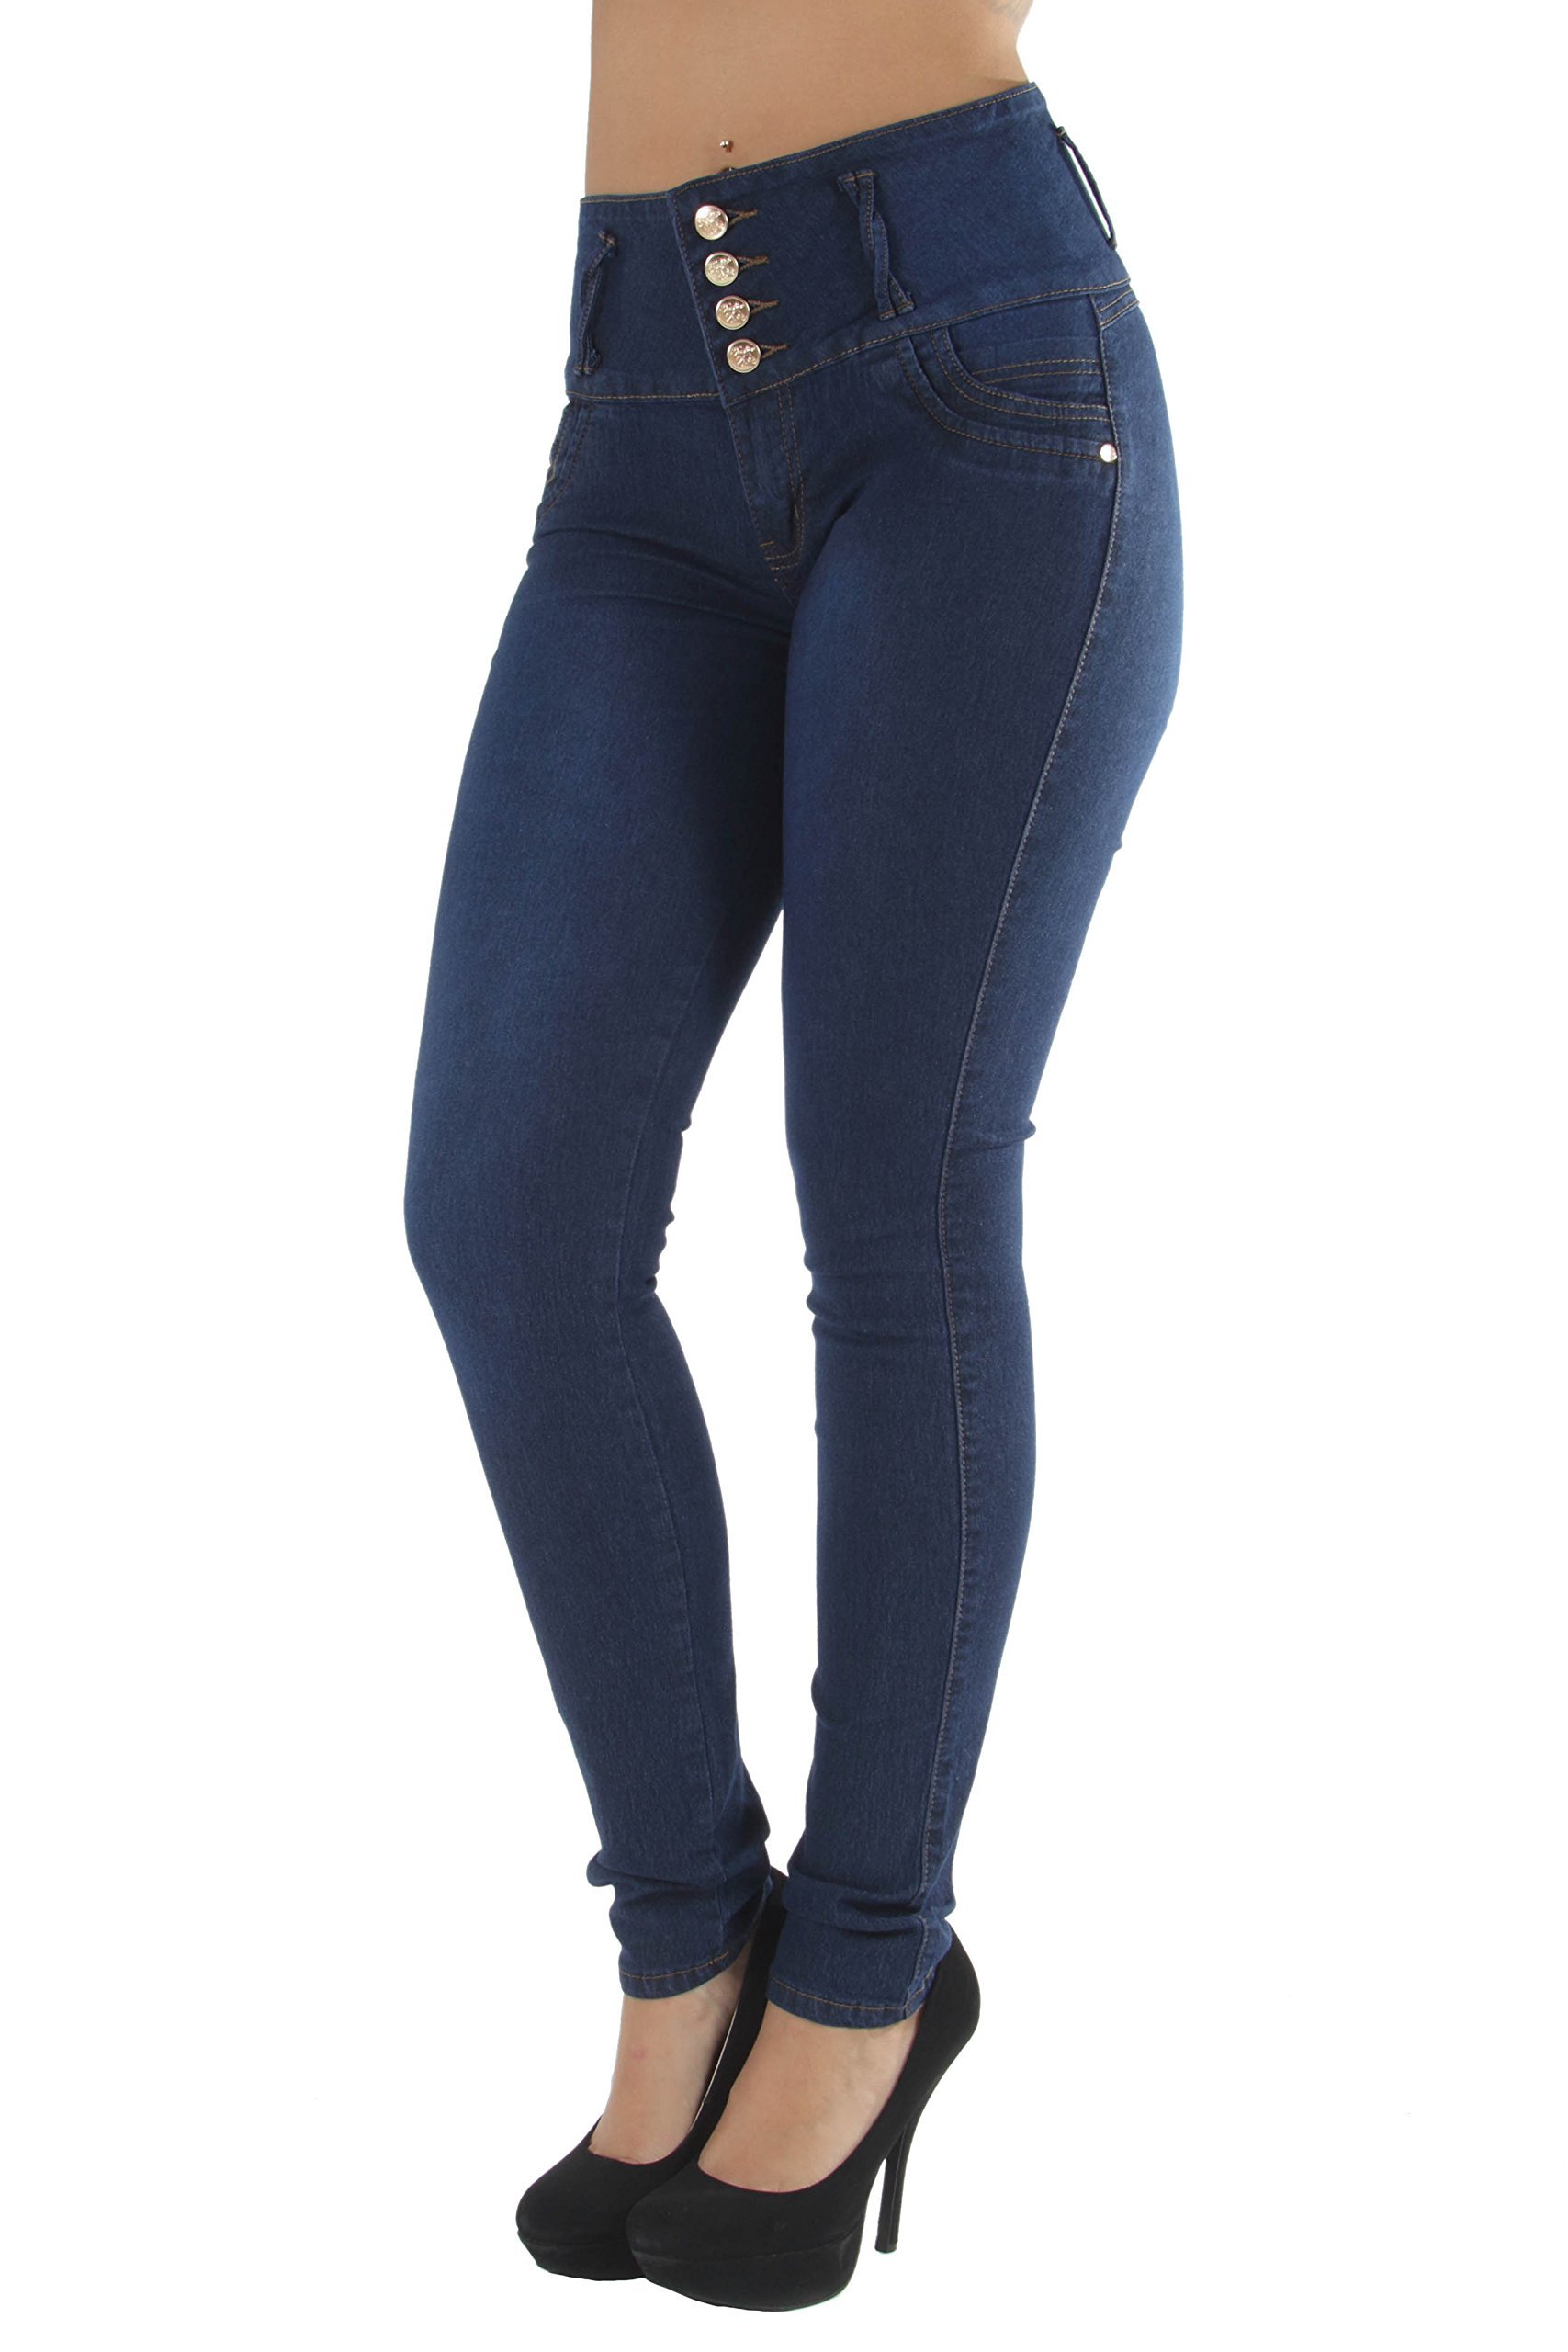 Fashion2Love K157– Colombian Design, Butt Lift, Levanta Cola, High Waist, Sexy Skinny Jeans in Navy Size 9